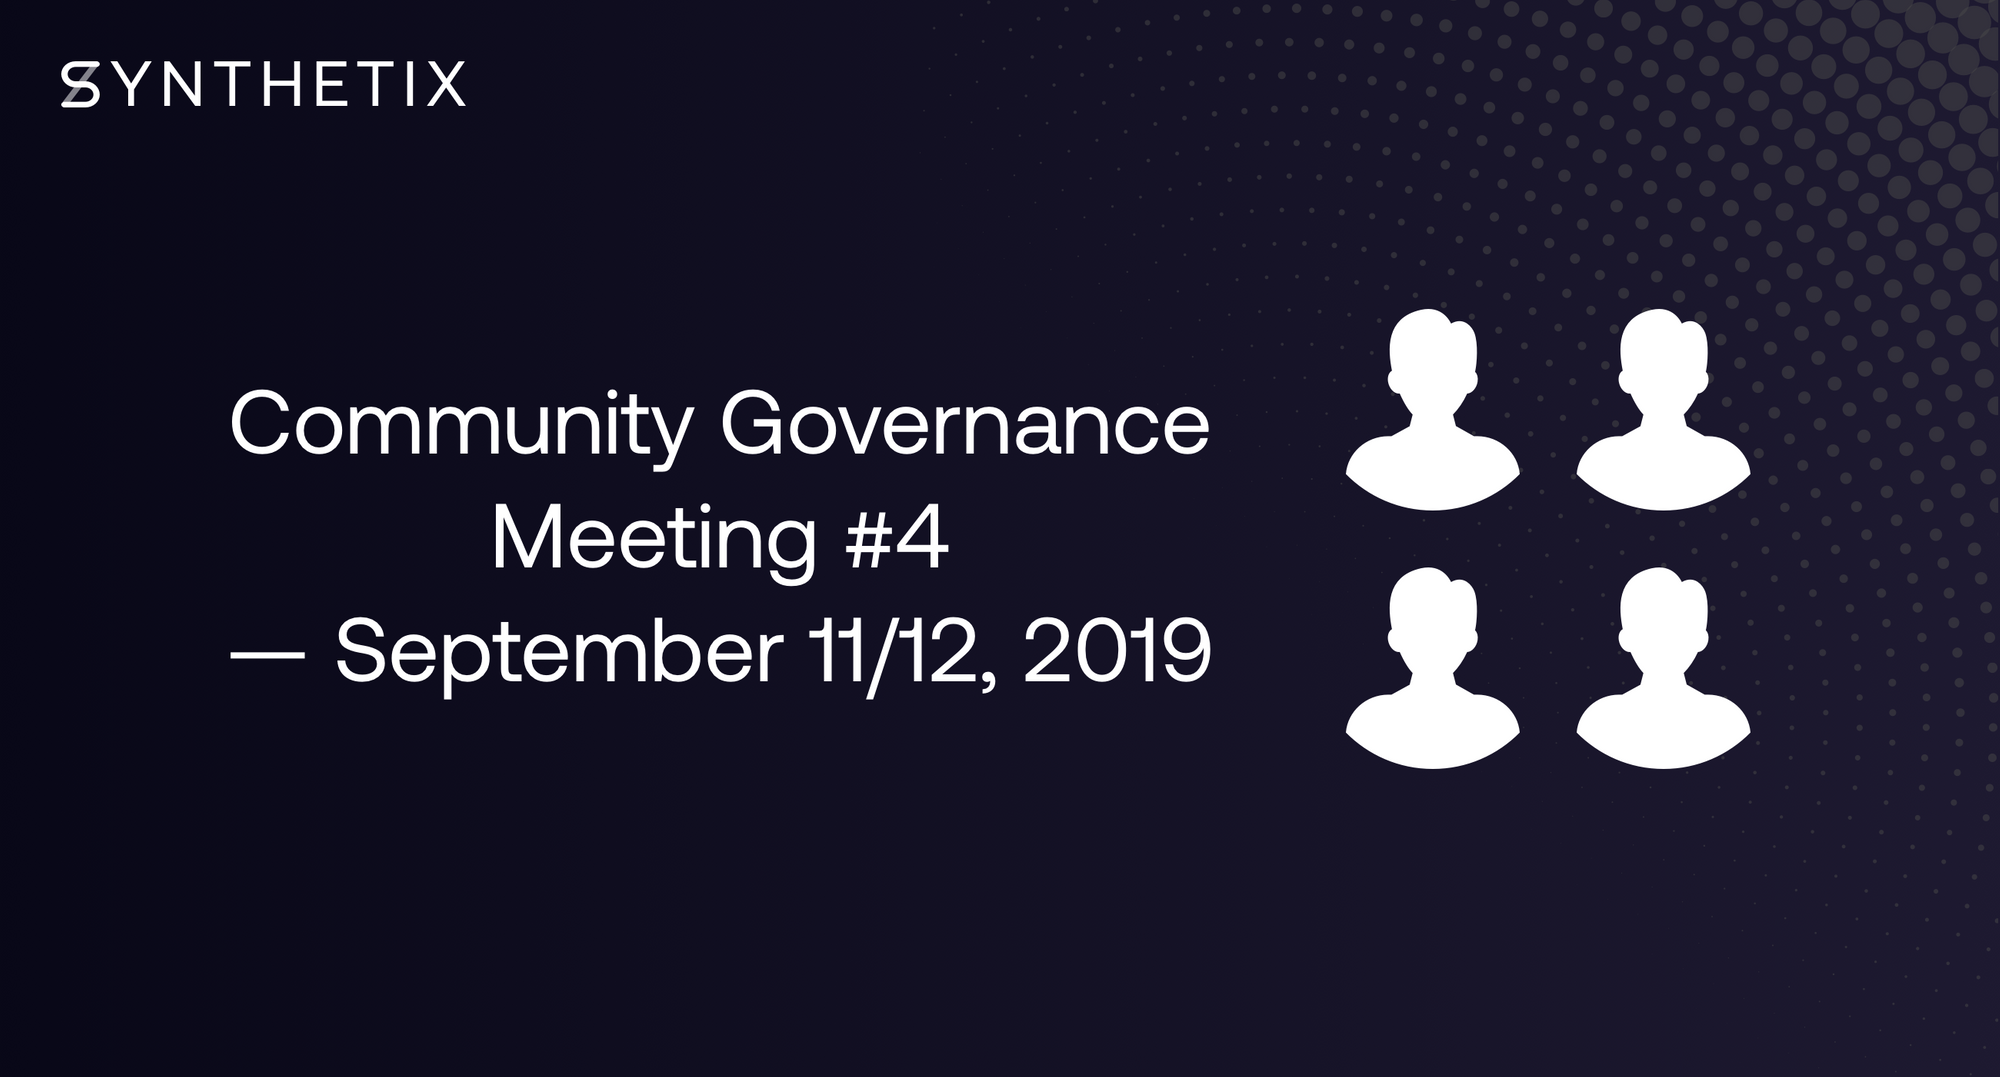 Join us in the next community governance call on September 11/12!